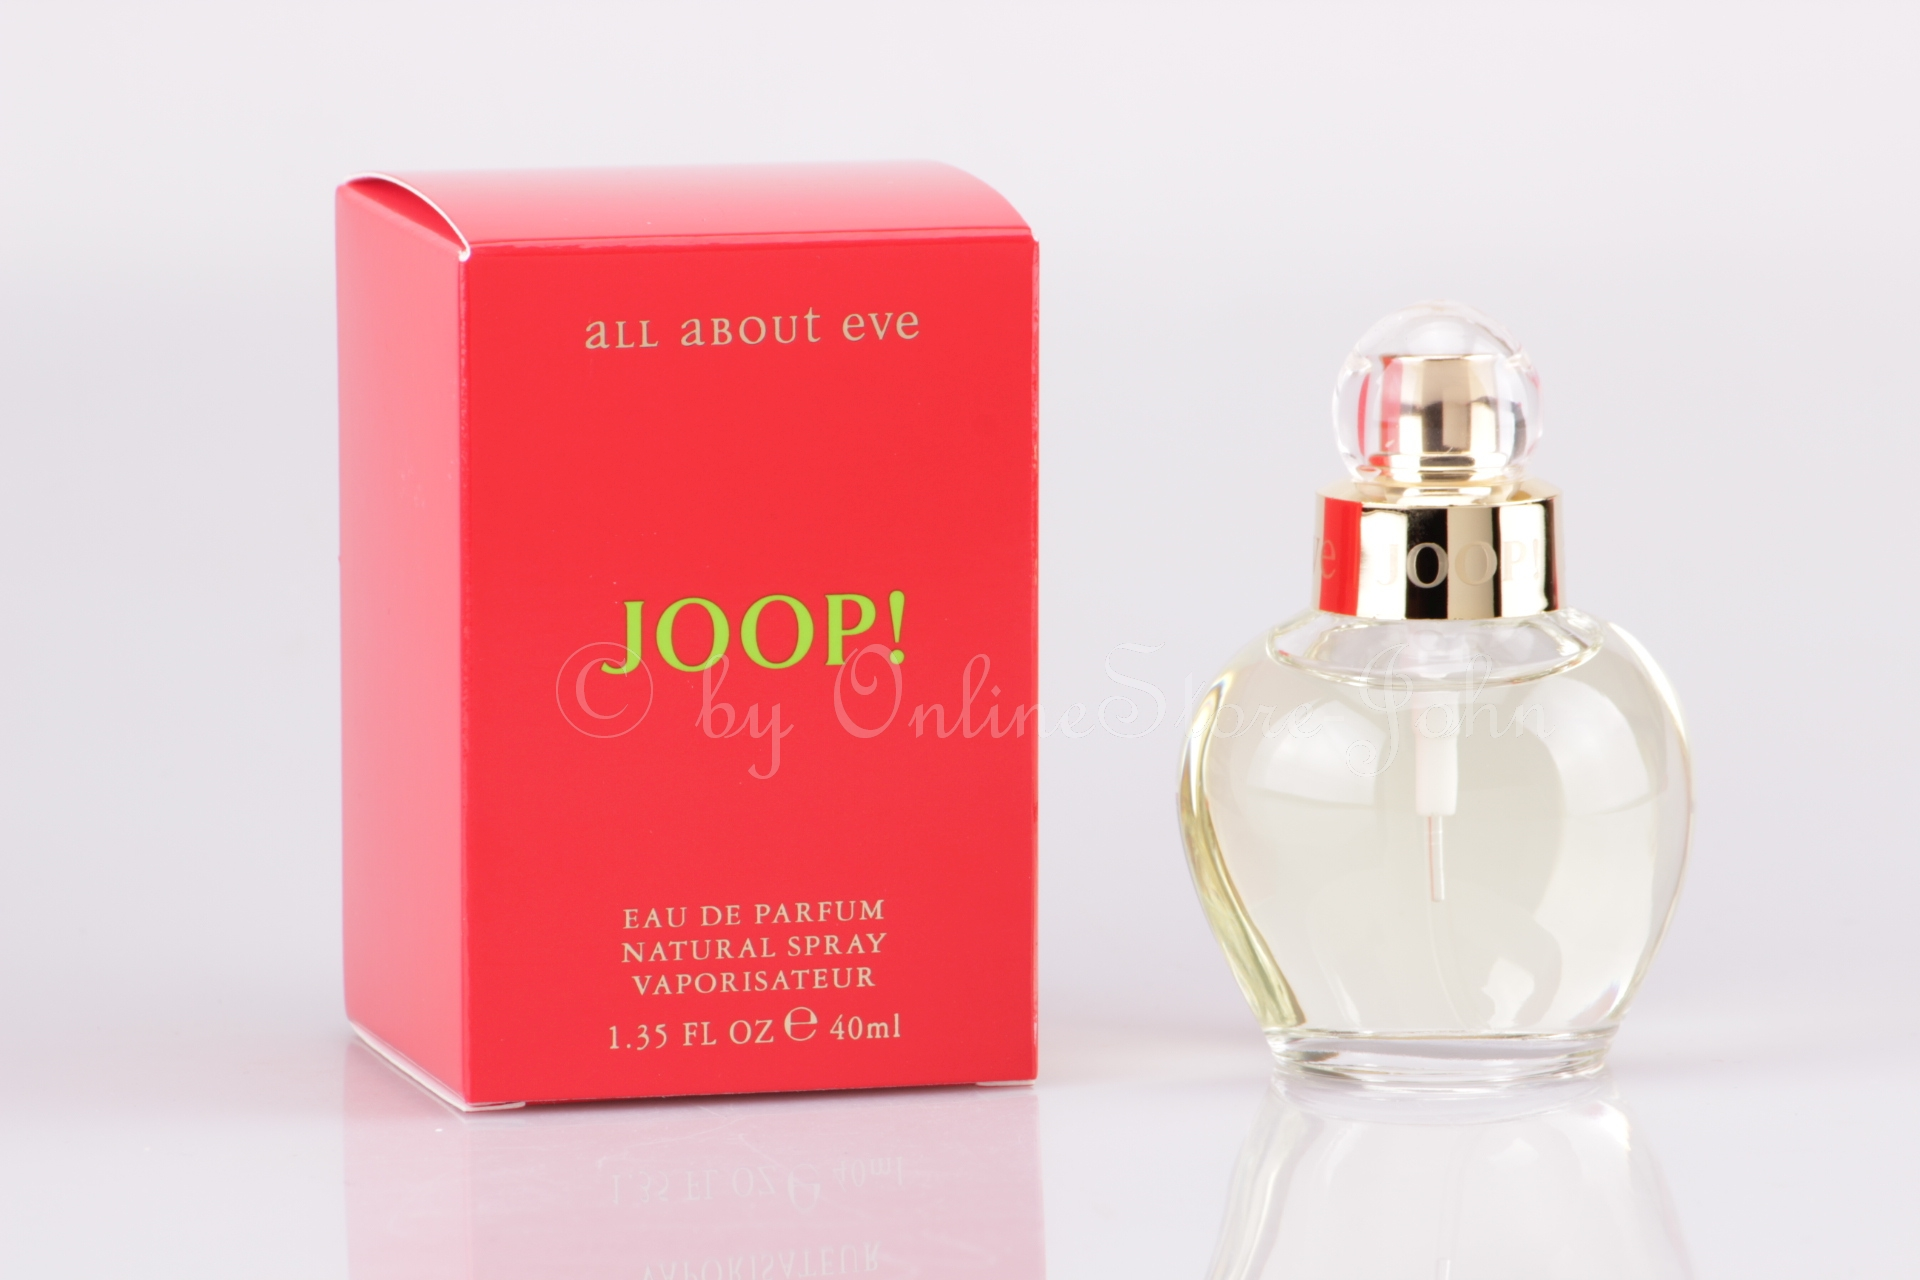 joop all about eve 40ml edp eau de parfum. Black Bedroom Furniture Sets. Home Design Ideas